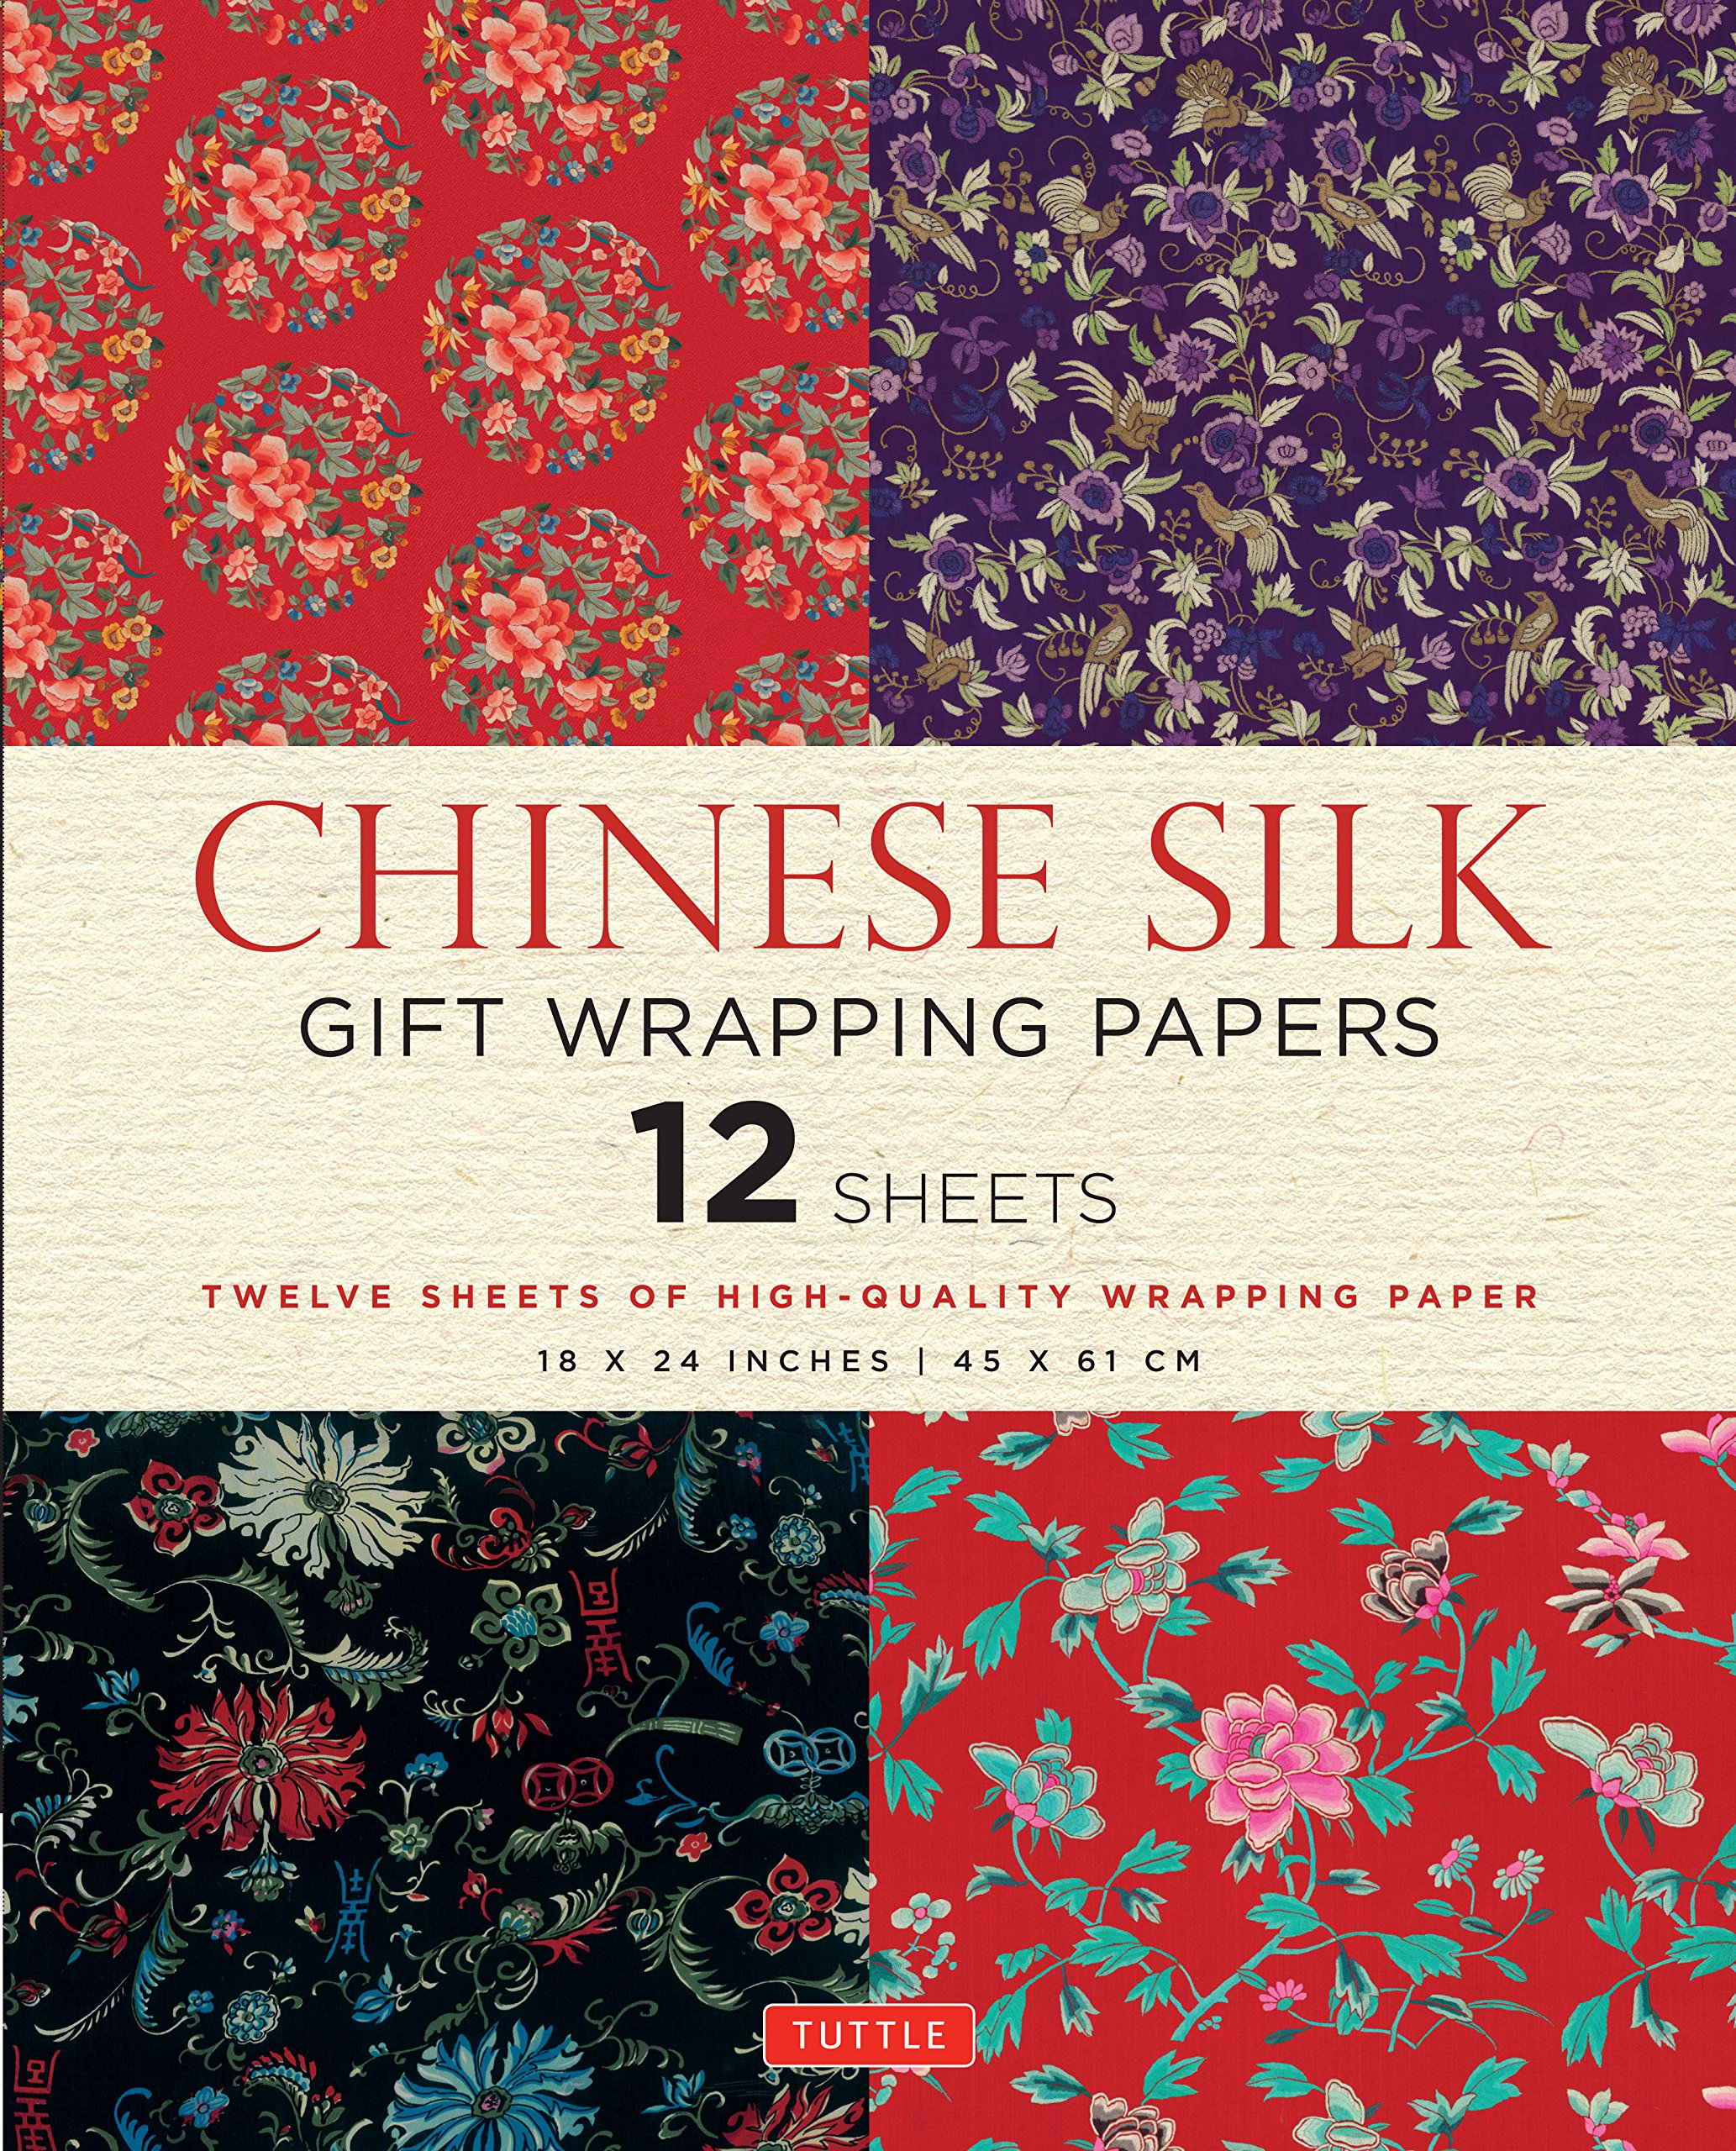 acb233a81 Chinese Silk Gift Wrapping Papers: 12 Sheets of High-Quality 18 x 24 inch  Wrapping Paper Paperback – December 8, 2015. by Tuttle Publishing ...